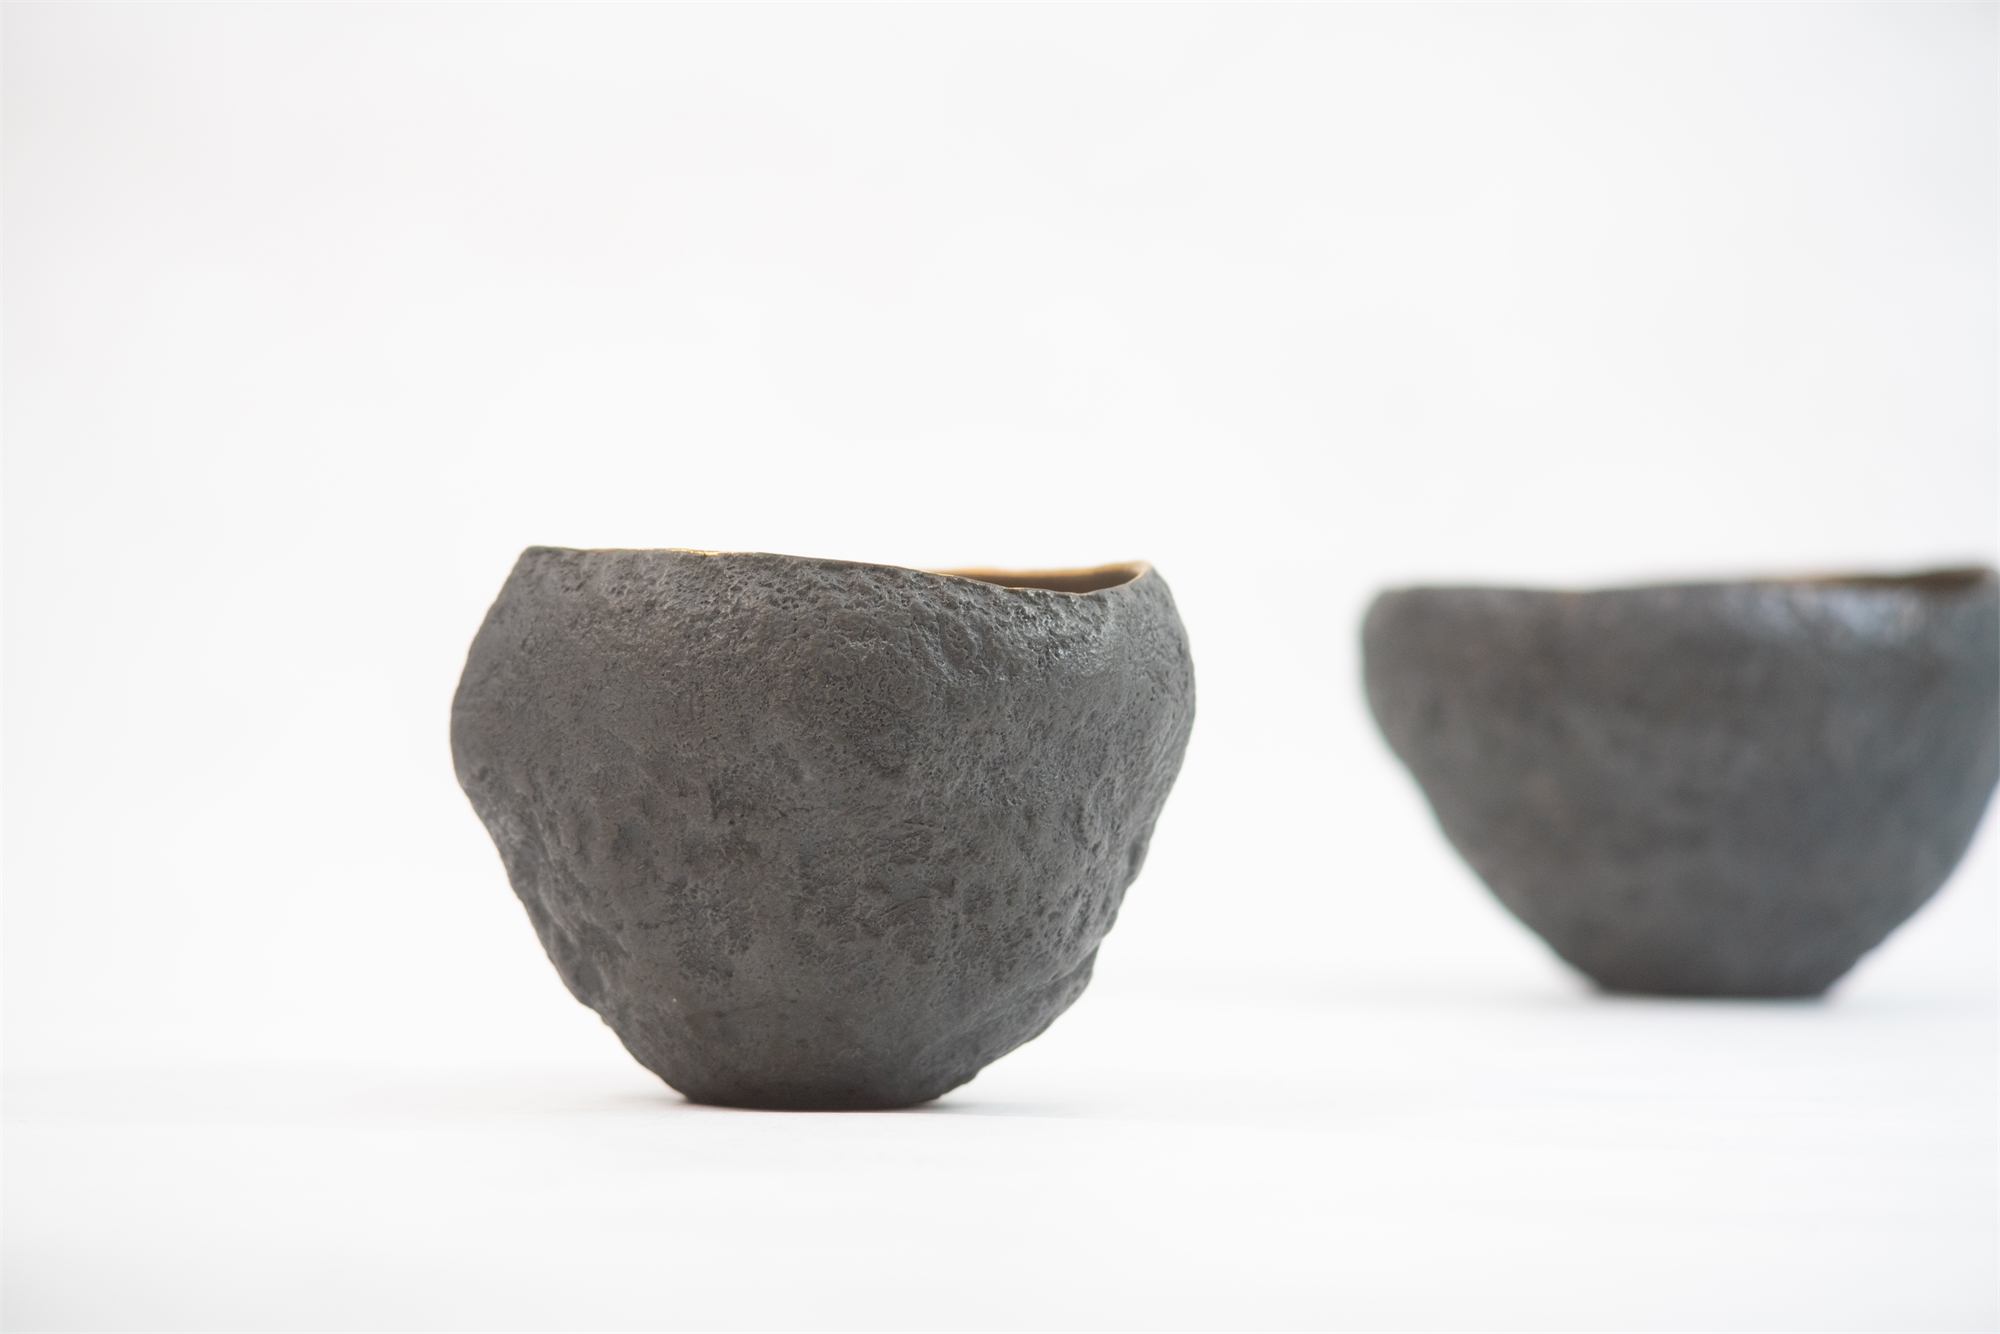 Small vessels with bronze